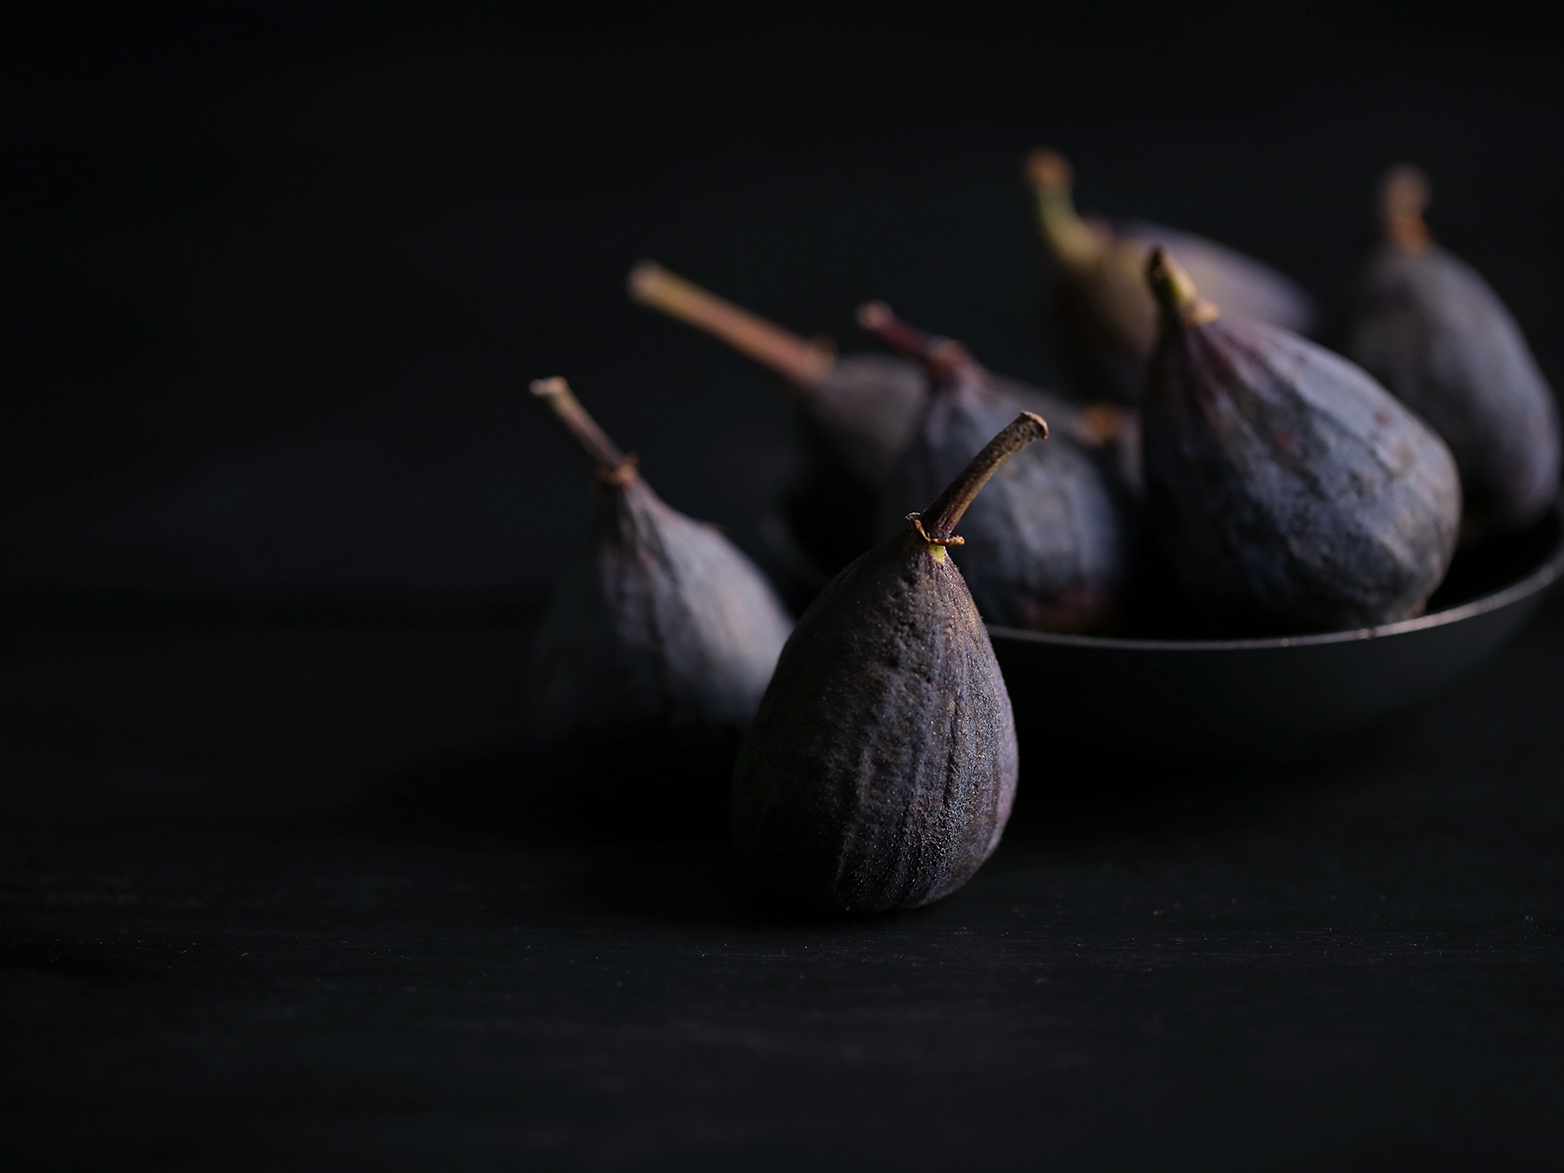 Figs food styling food photography food and drink food color canon 5d mark iii canon 100mm f2.8 adobe photoshop